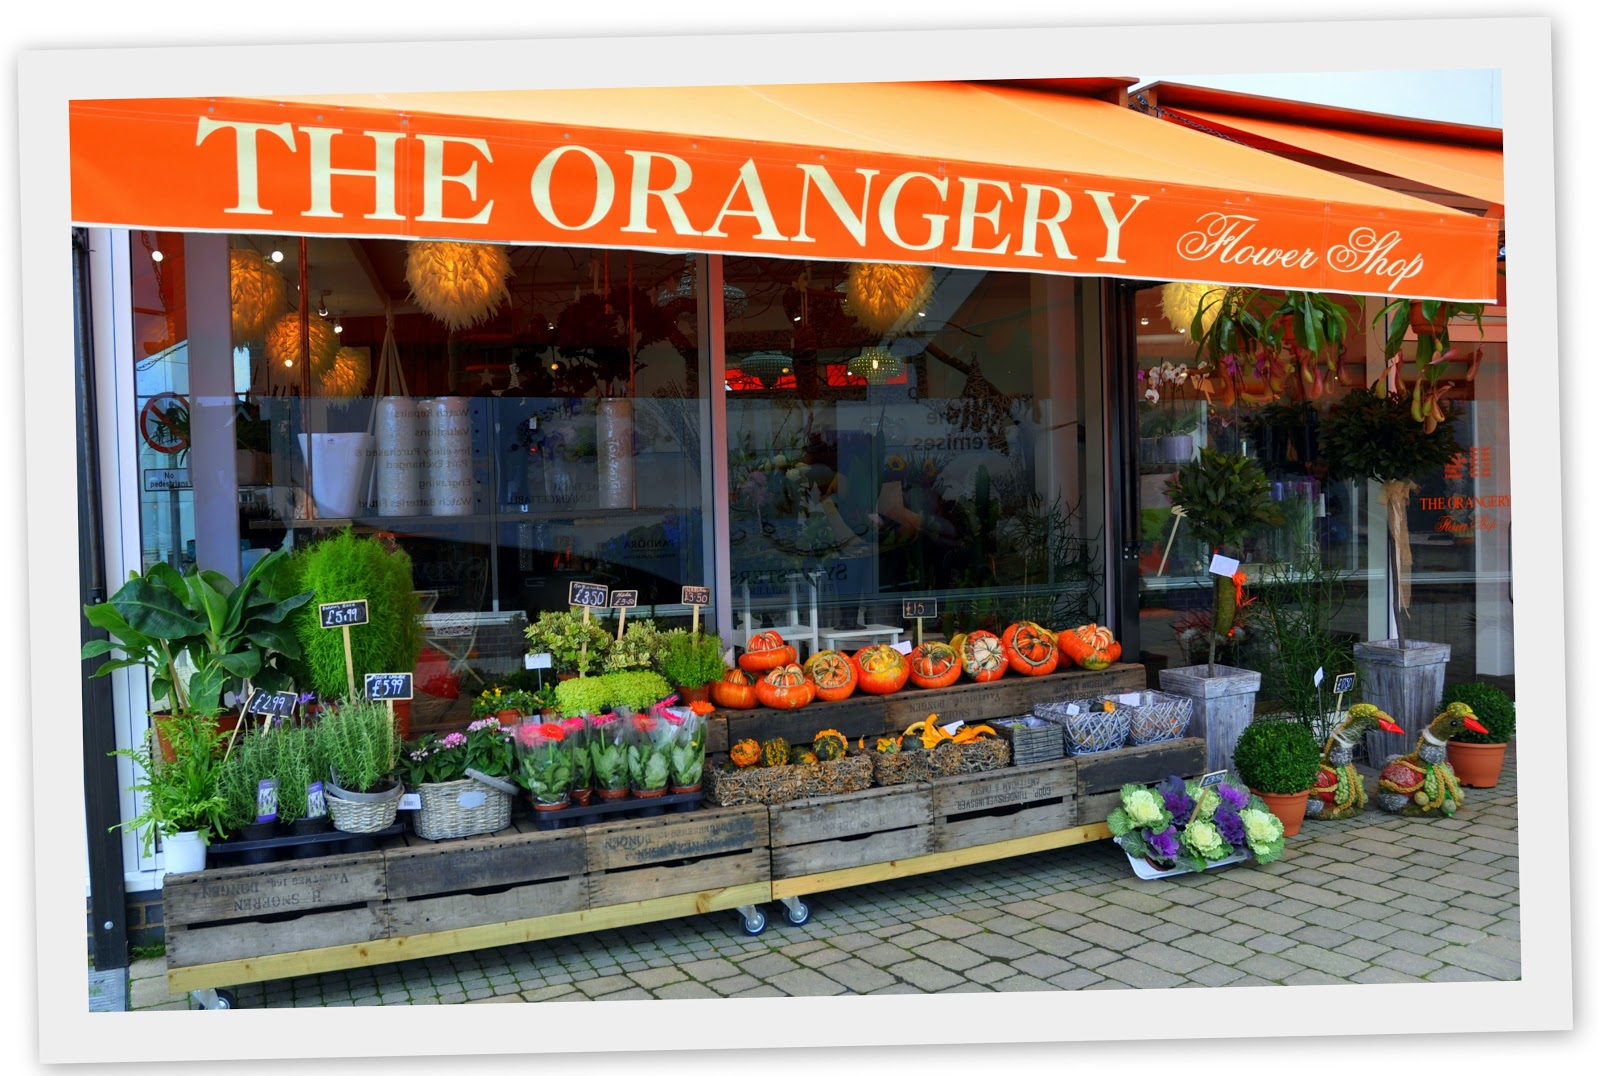 Mike downes we make videos to help people learn the orangery the orangery flower shop 19 talisman square cv8 1jb 01926 859712 theorangeryflowershopgmail mon to fri 9 6pm sat 9 5pm sun closed izmirmasajfo